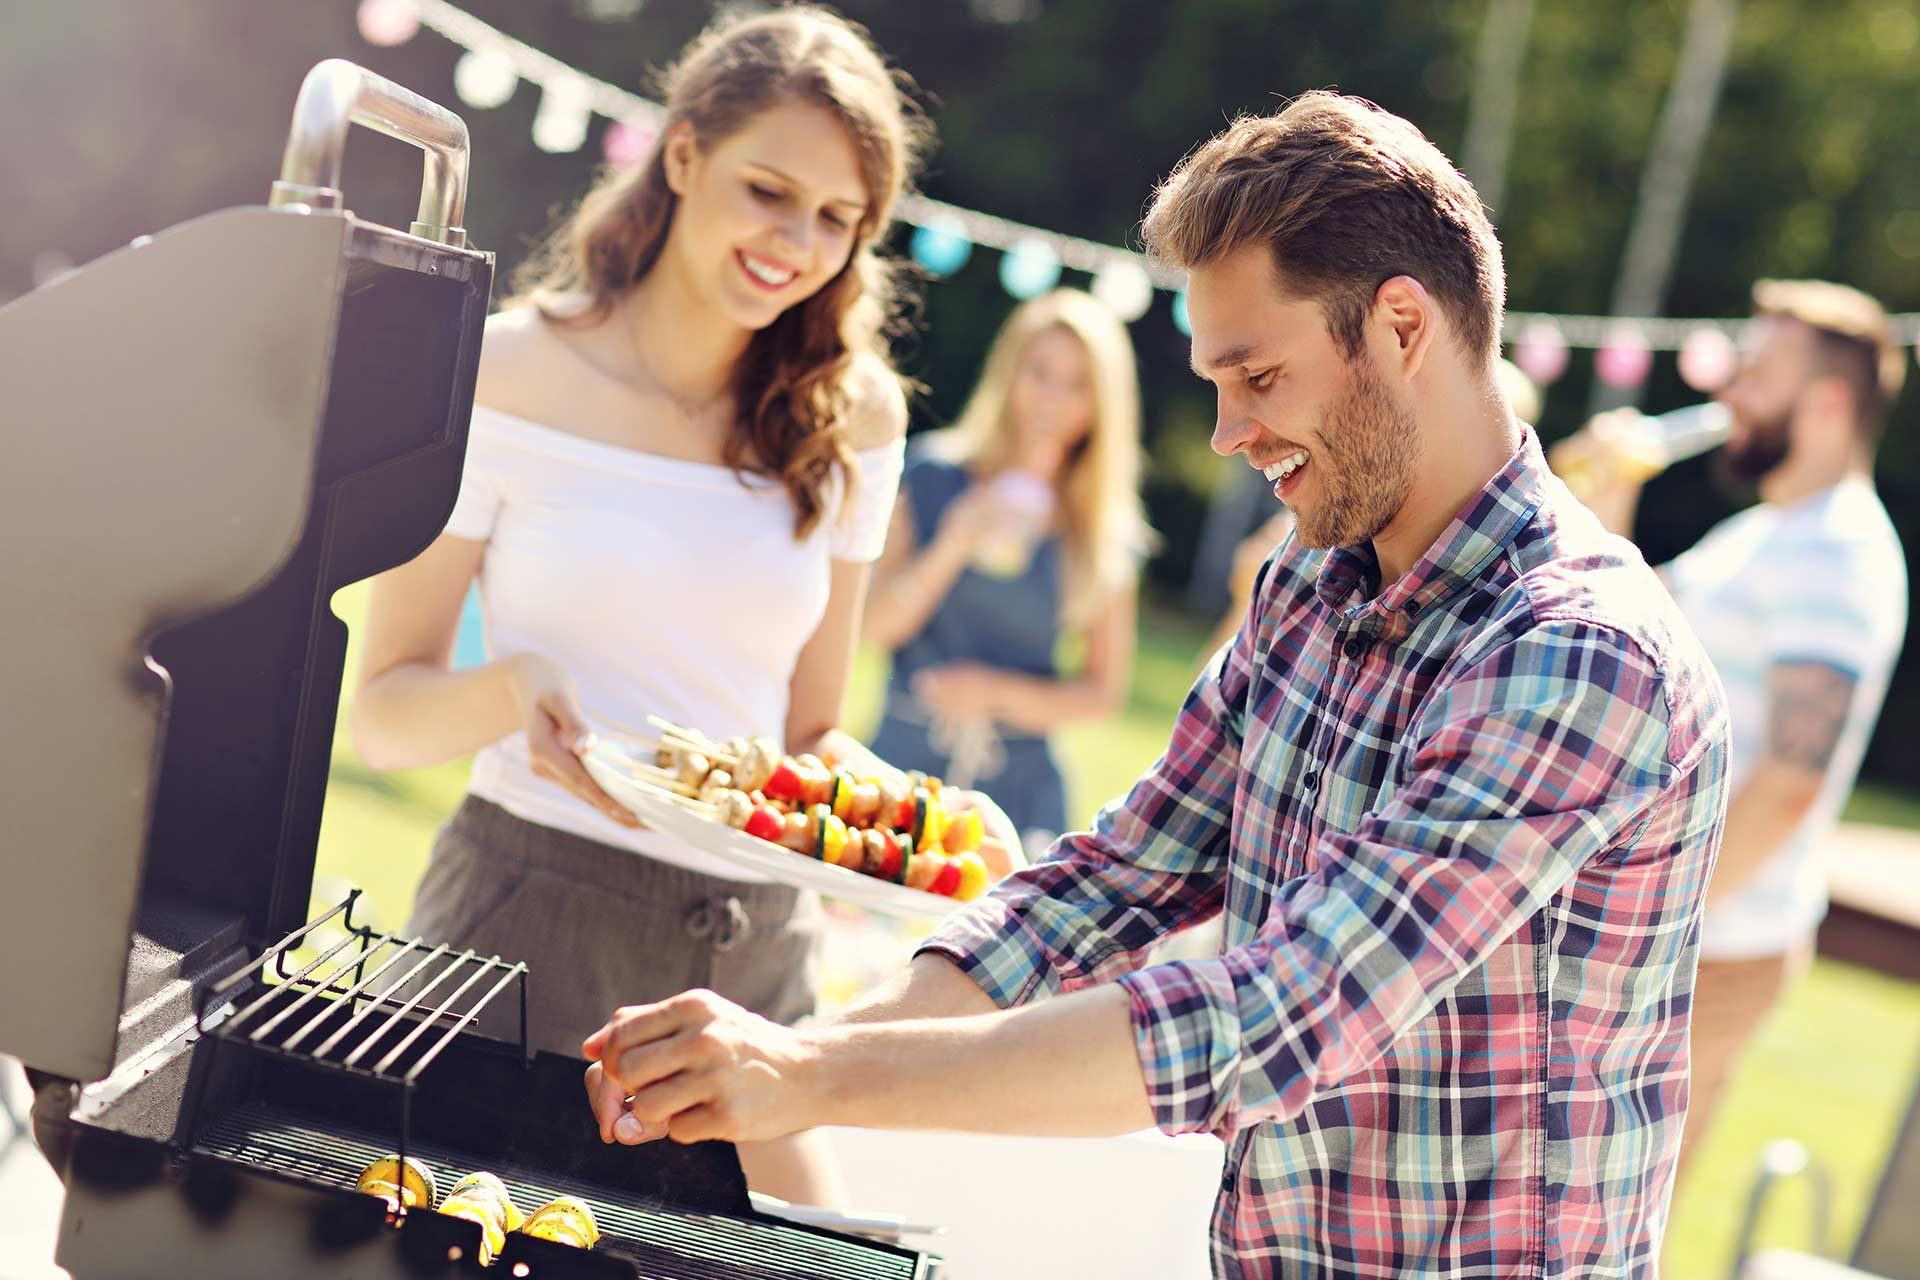 a man grilling food for a backyard party